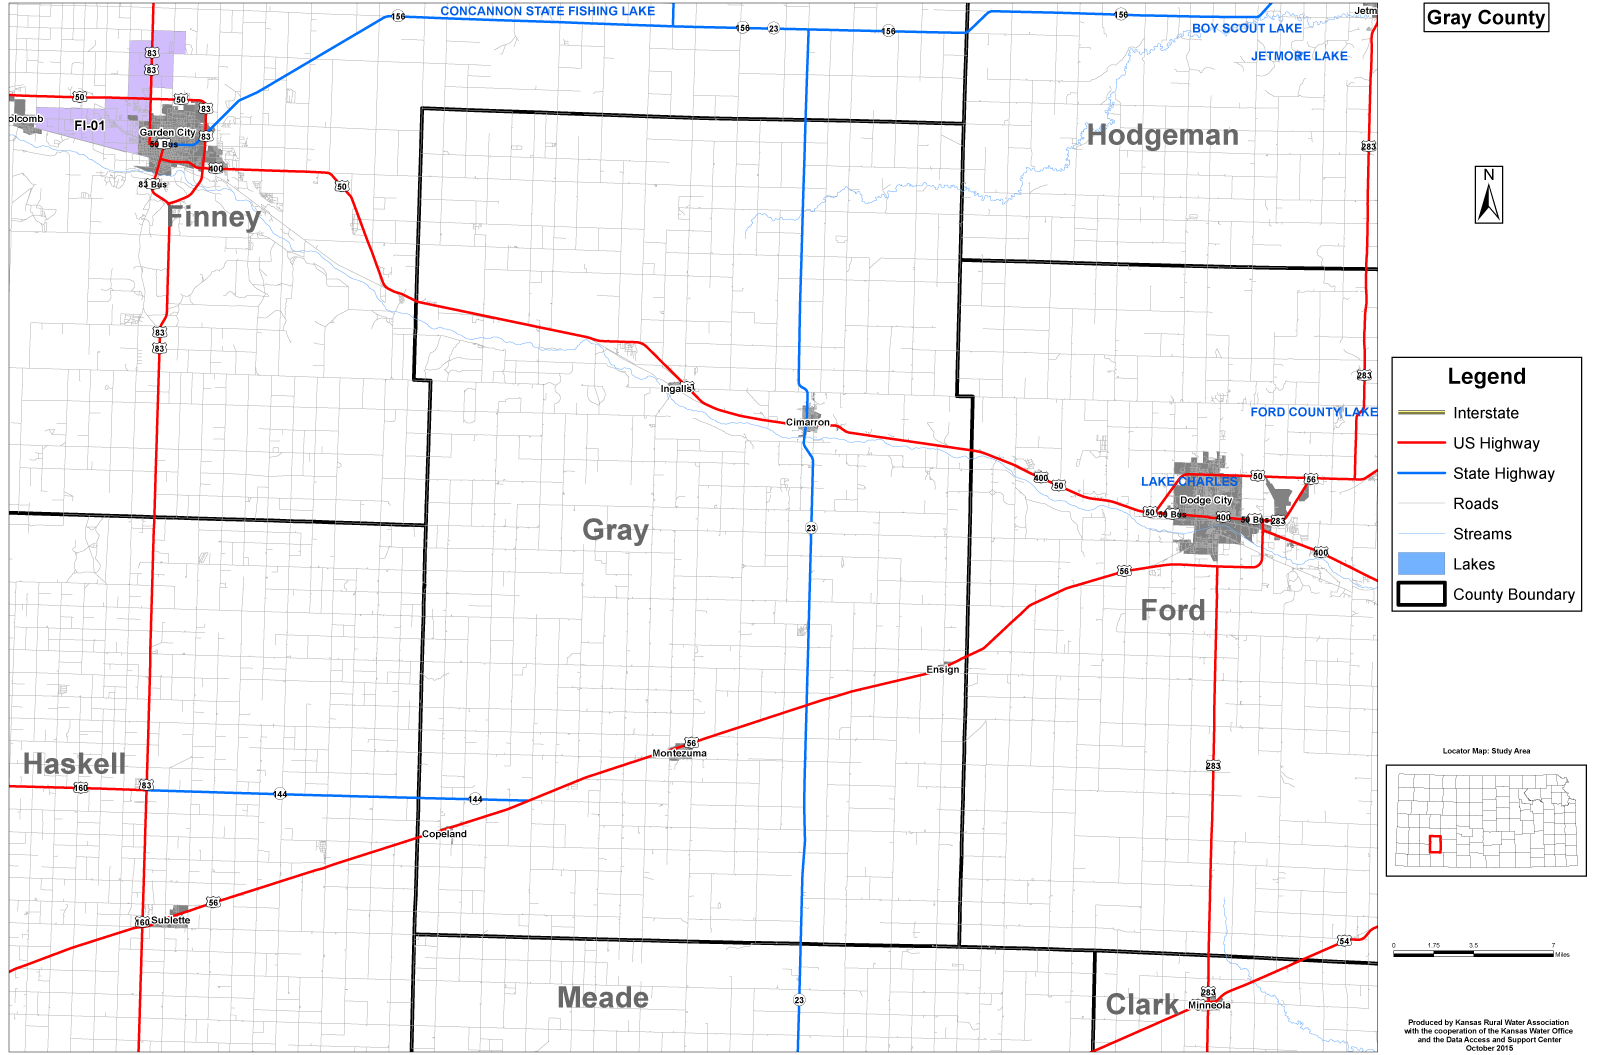 Kansas gray county copeland - Search Contact Information In Our Directory Of City Rwd Contacts More About These Maps And Accuracy Back To Main Maps Page